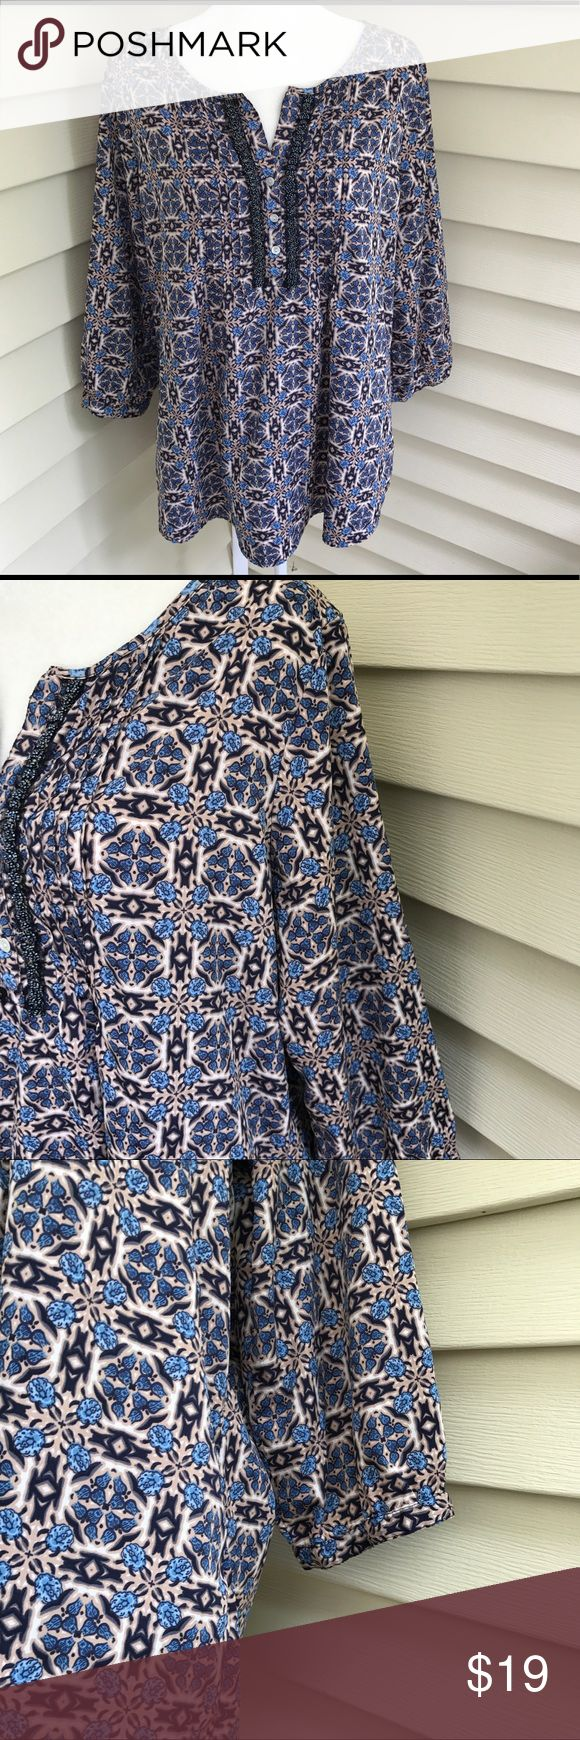 """Dress Barn plus size V-Neck Aztec design top Beautiful top and in excellent condition. V-neck with embellished sequins and 3 buttons. Size 1X. Pit to pit 24"""" pit to hem 17"""". Colors are Blue/Tan/white. 100% polyester. Sleeves are a 3/4. Bin 12 Dress Barn Tops Blouses"""